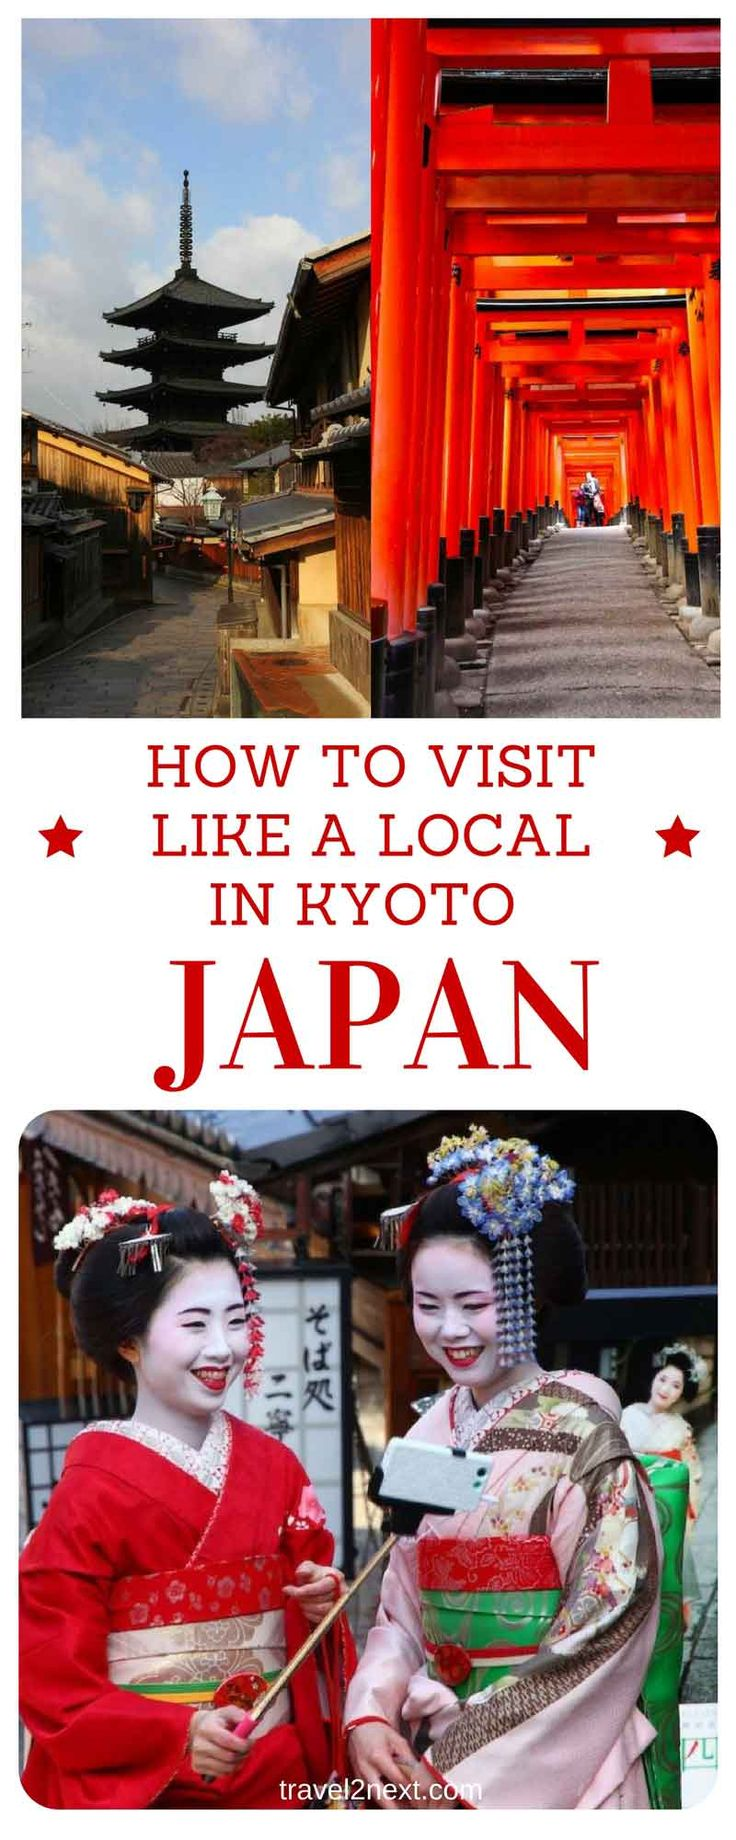 Kyoto – how to visit like a local. If you ever fantasised about experiencing Japanese life like a local, there is an alternative to staying in a hotel, both in Kyoto and Tokyo now.